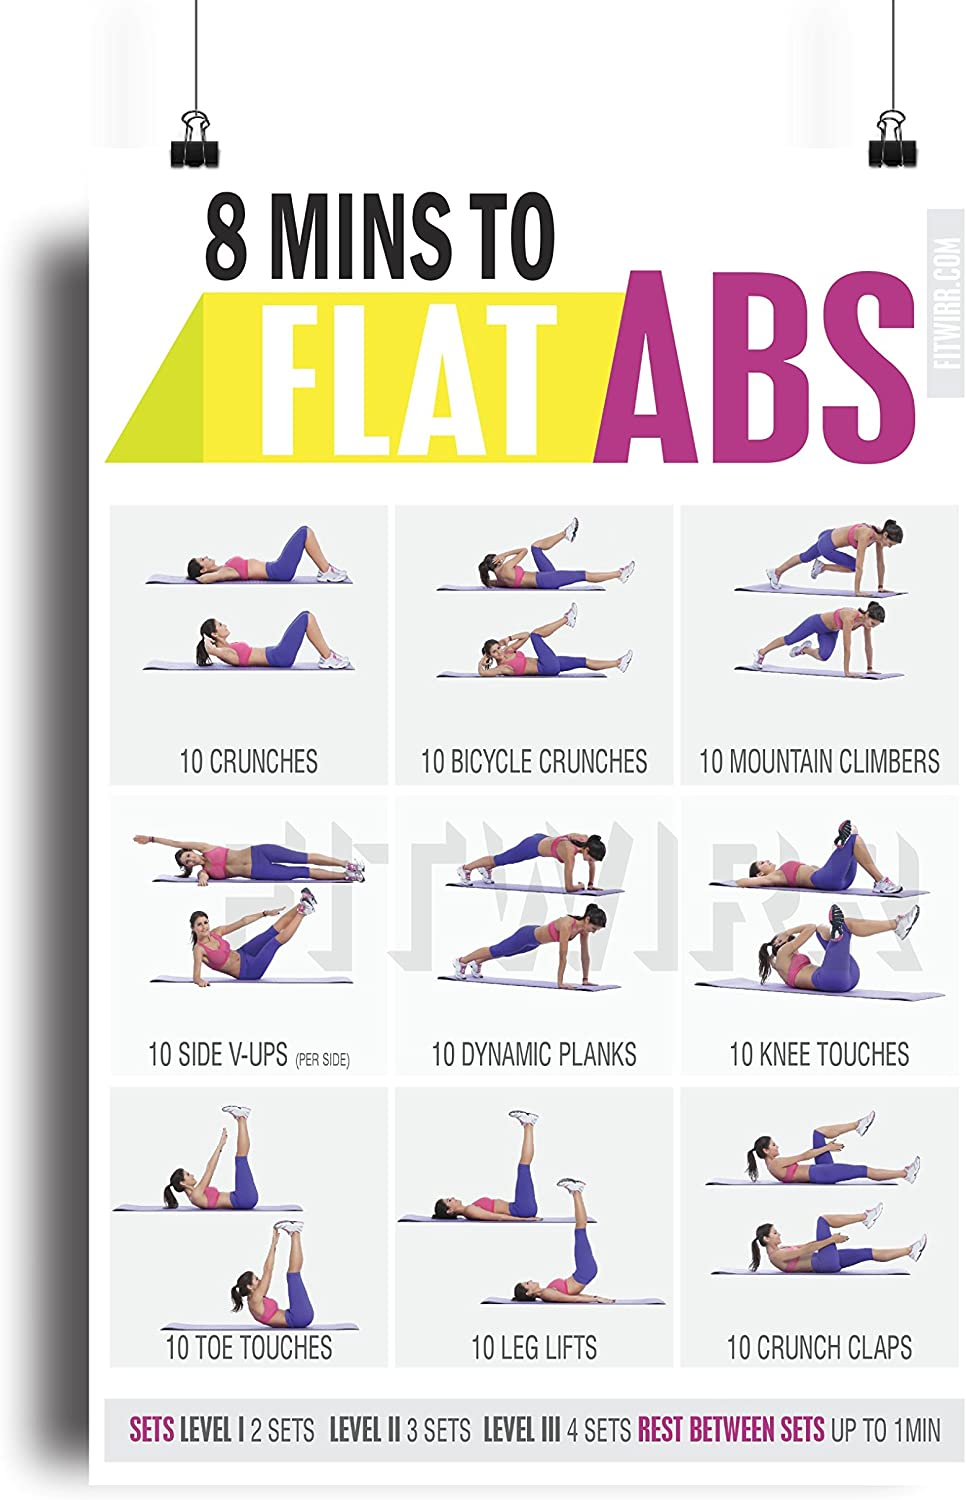 Amazon Com Fitwirr 8 Minute Abs Workout Poster Core Exercises For Women Tone And Tighten Your Abs Six Pack Abs Training Exercise Poster Bodyweight Workouts 19 X27 Sports Outdoors